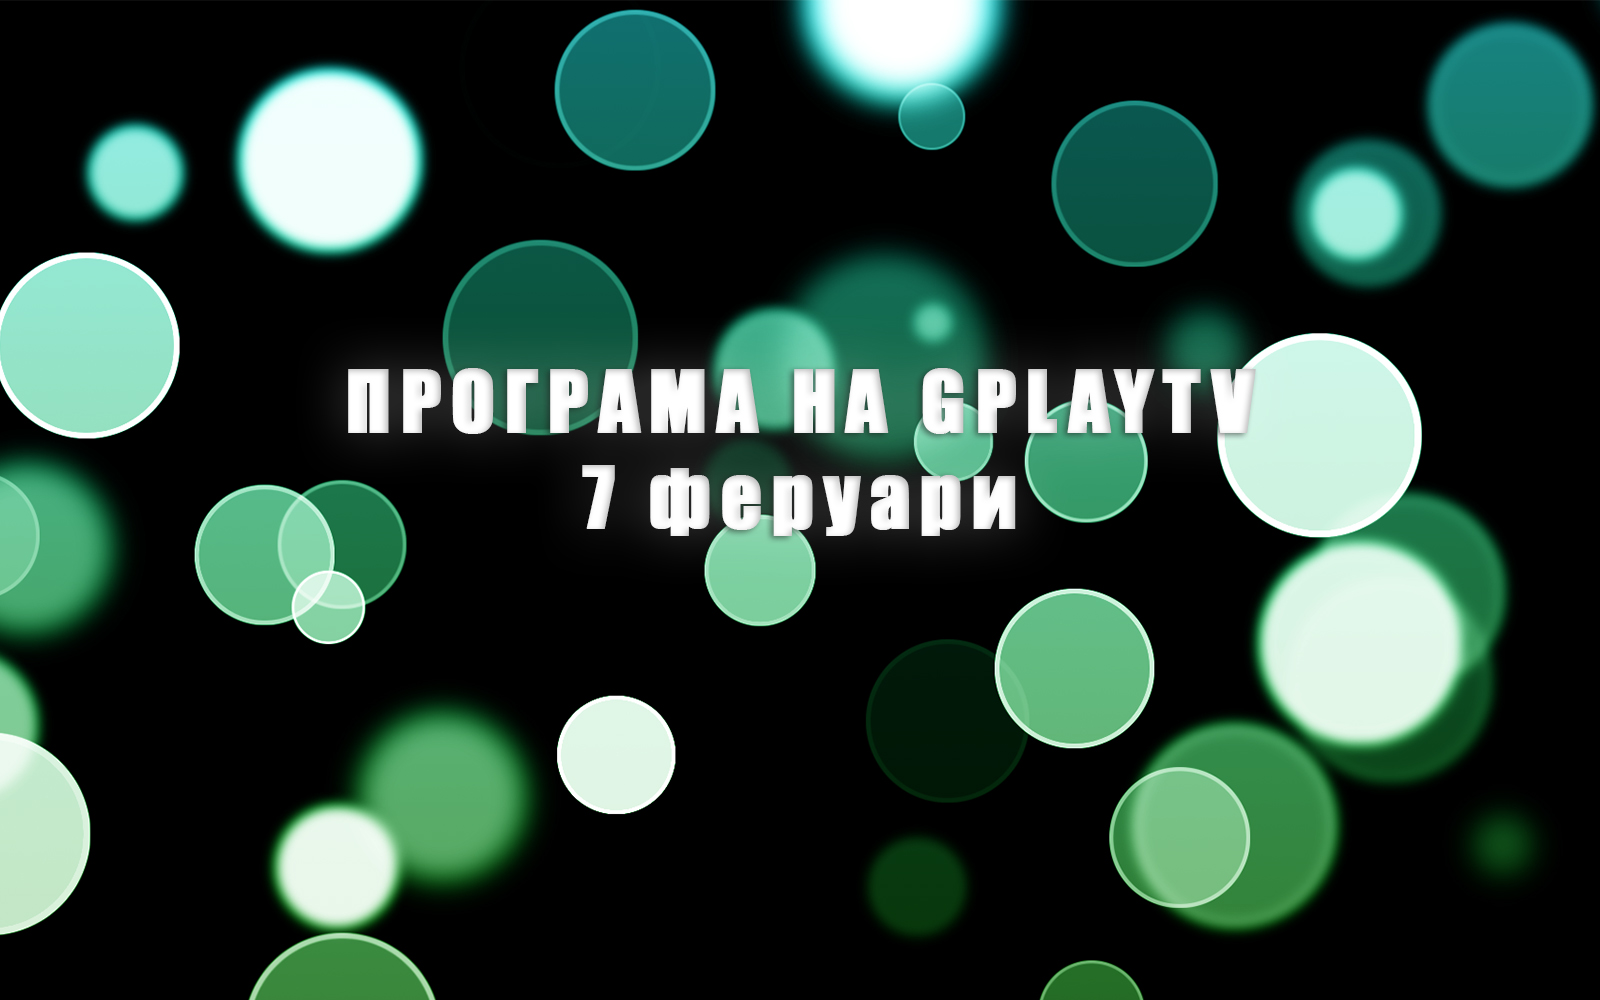 GPLAY TV Program 07.02